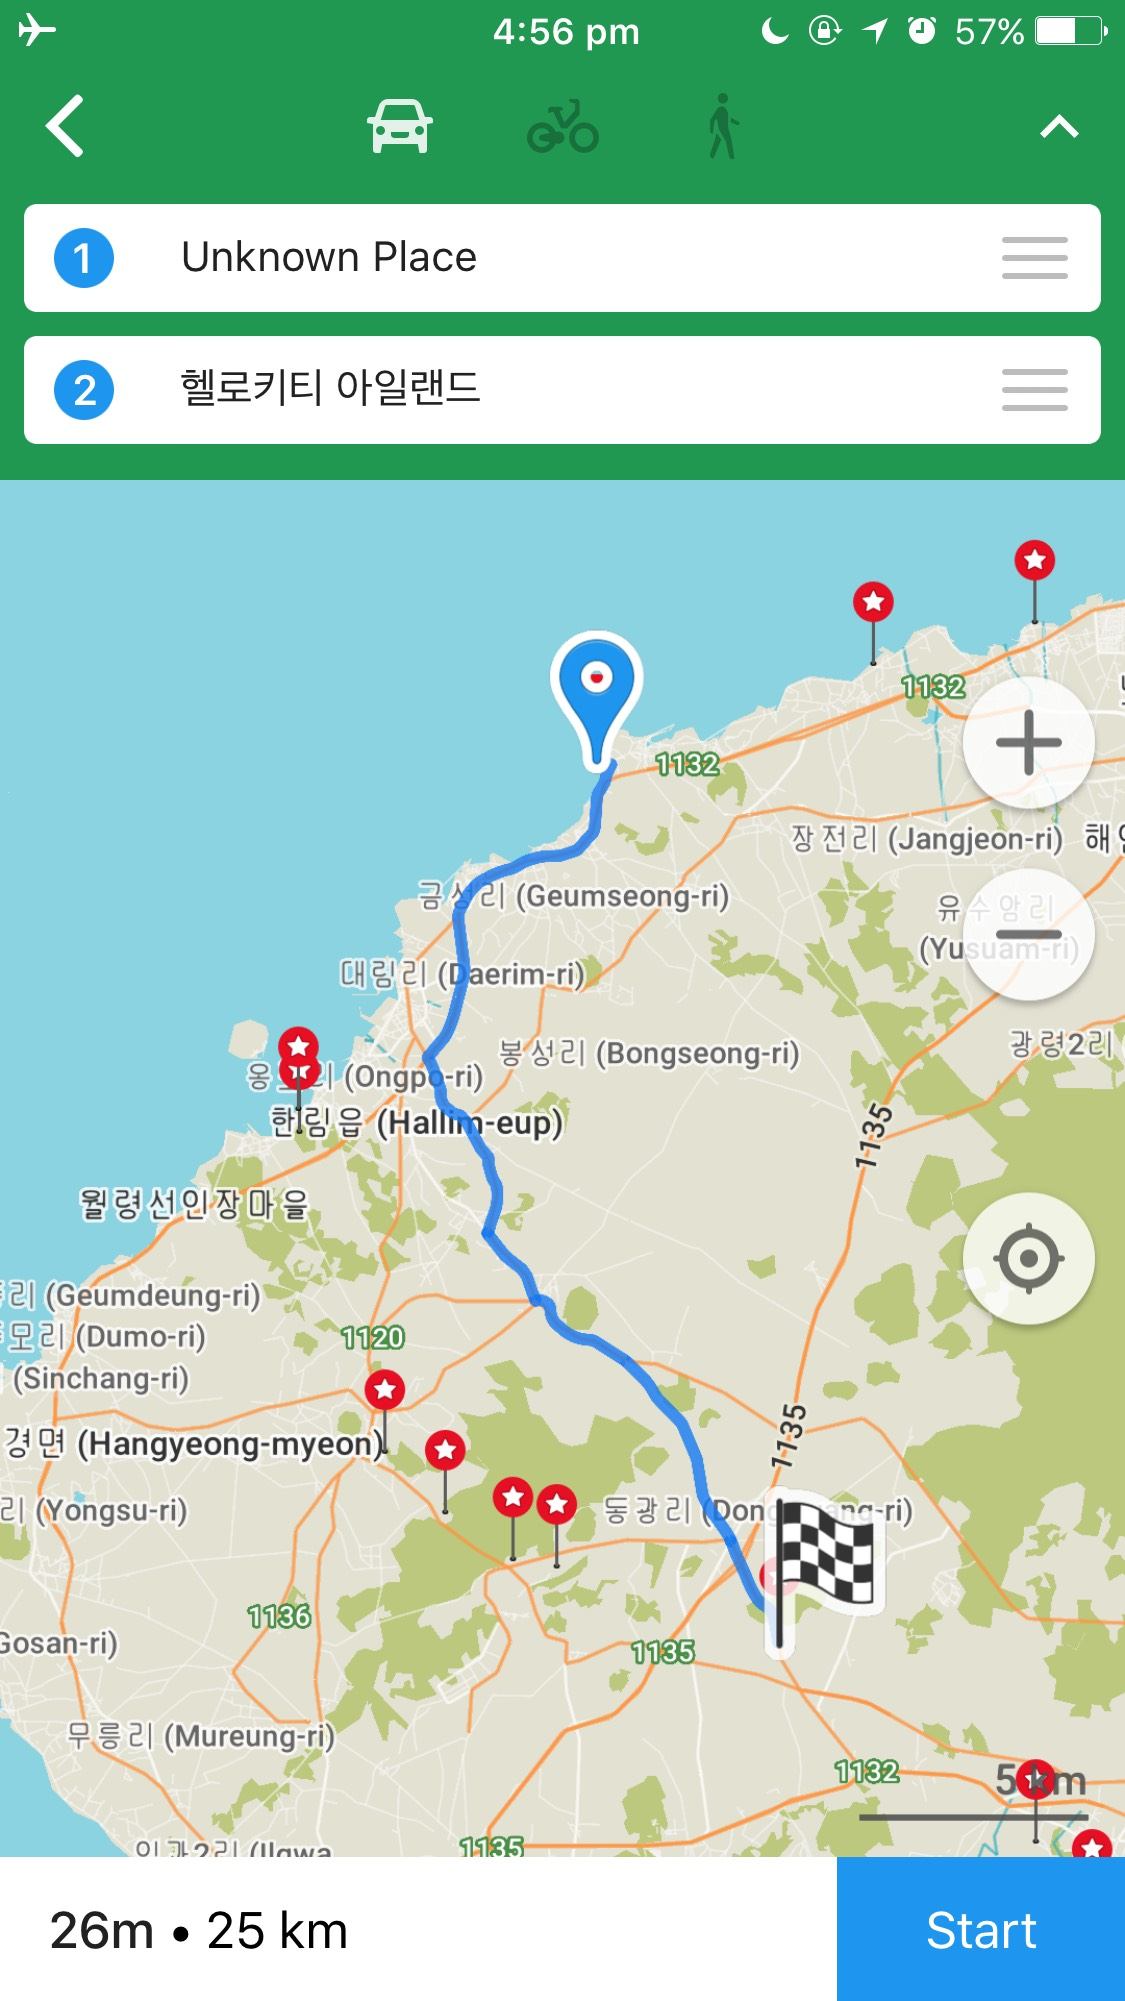 Maps.Me Driving Route